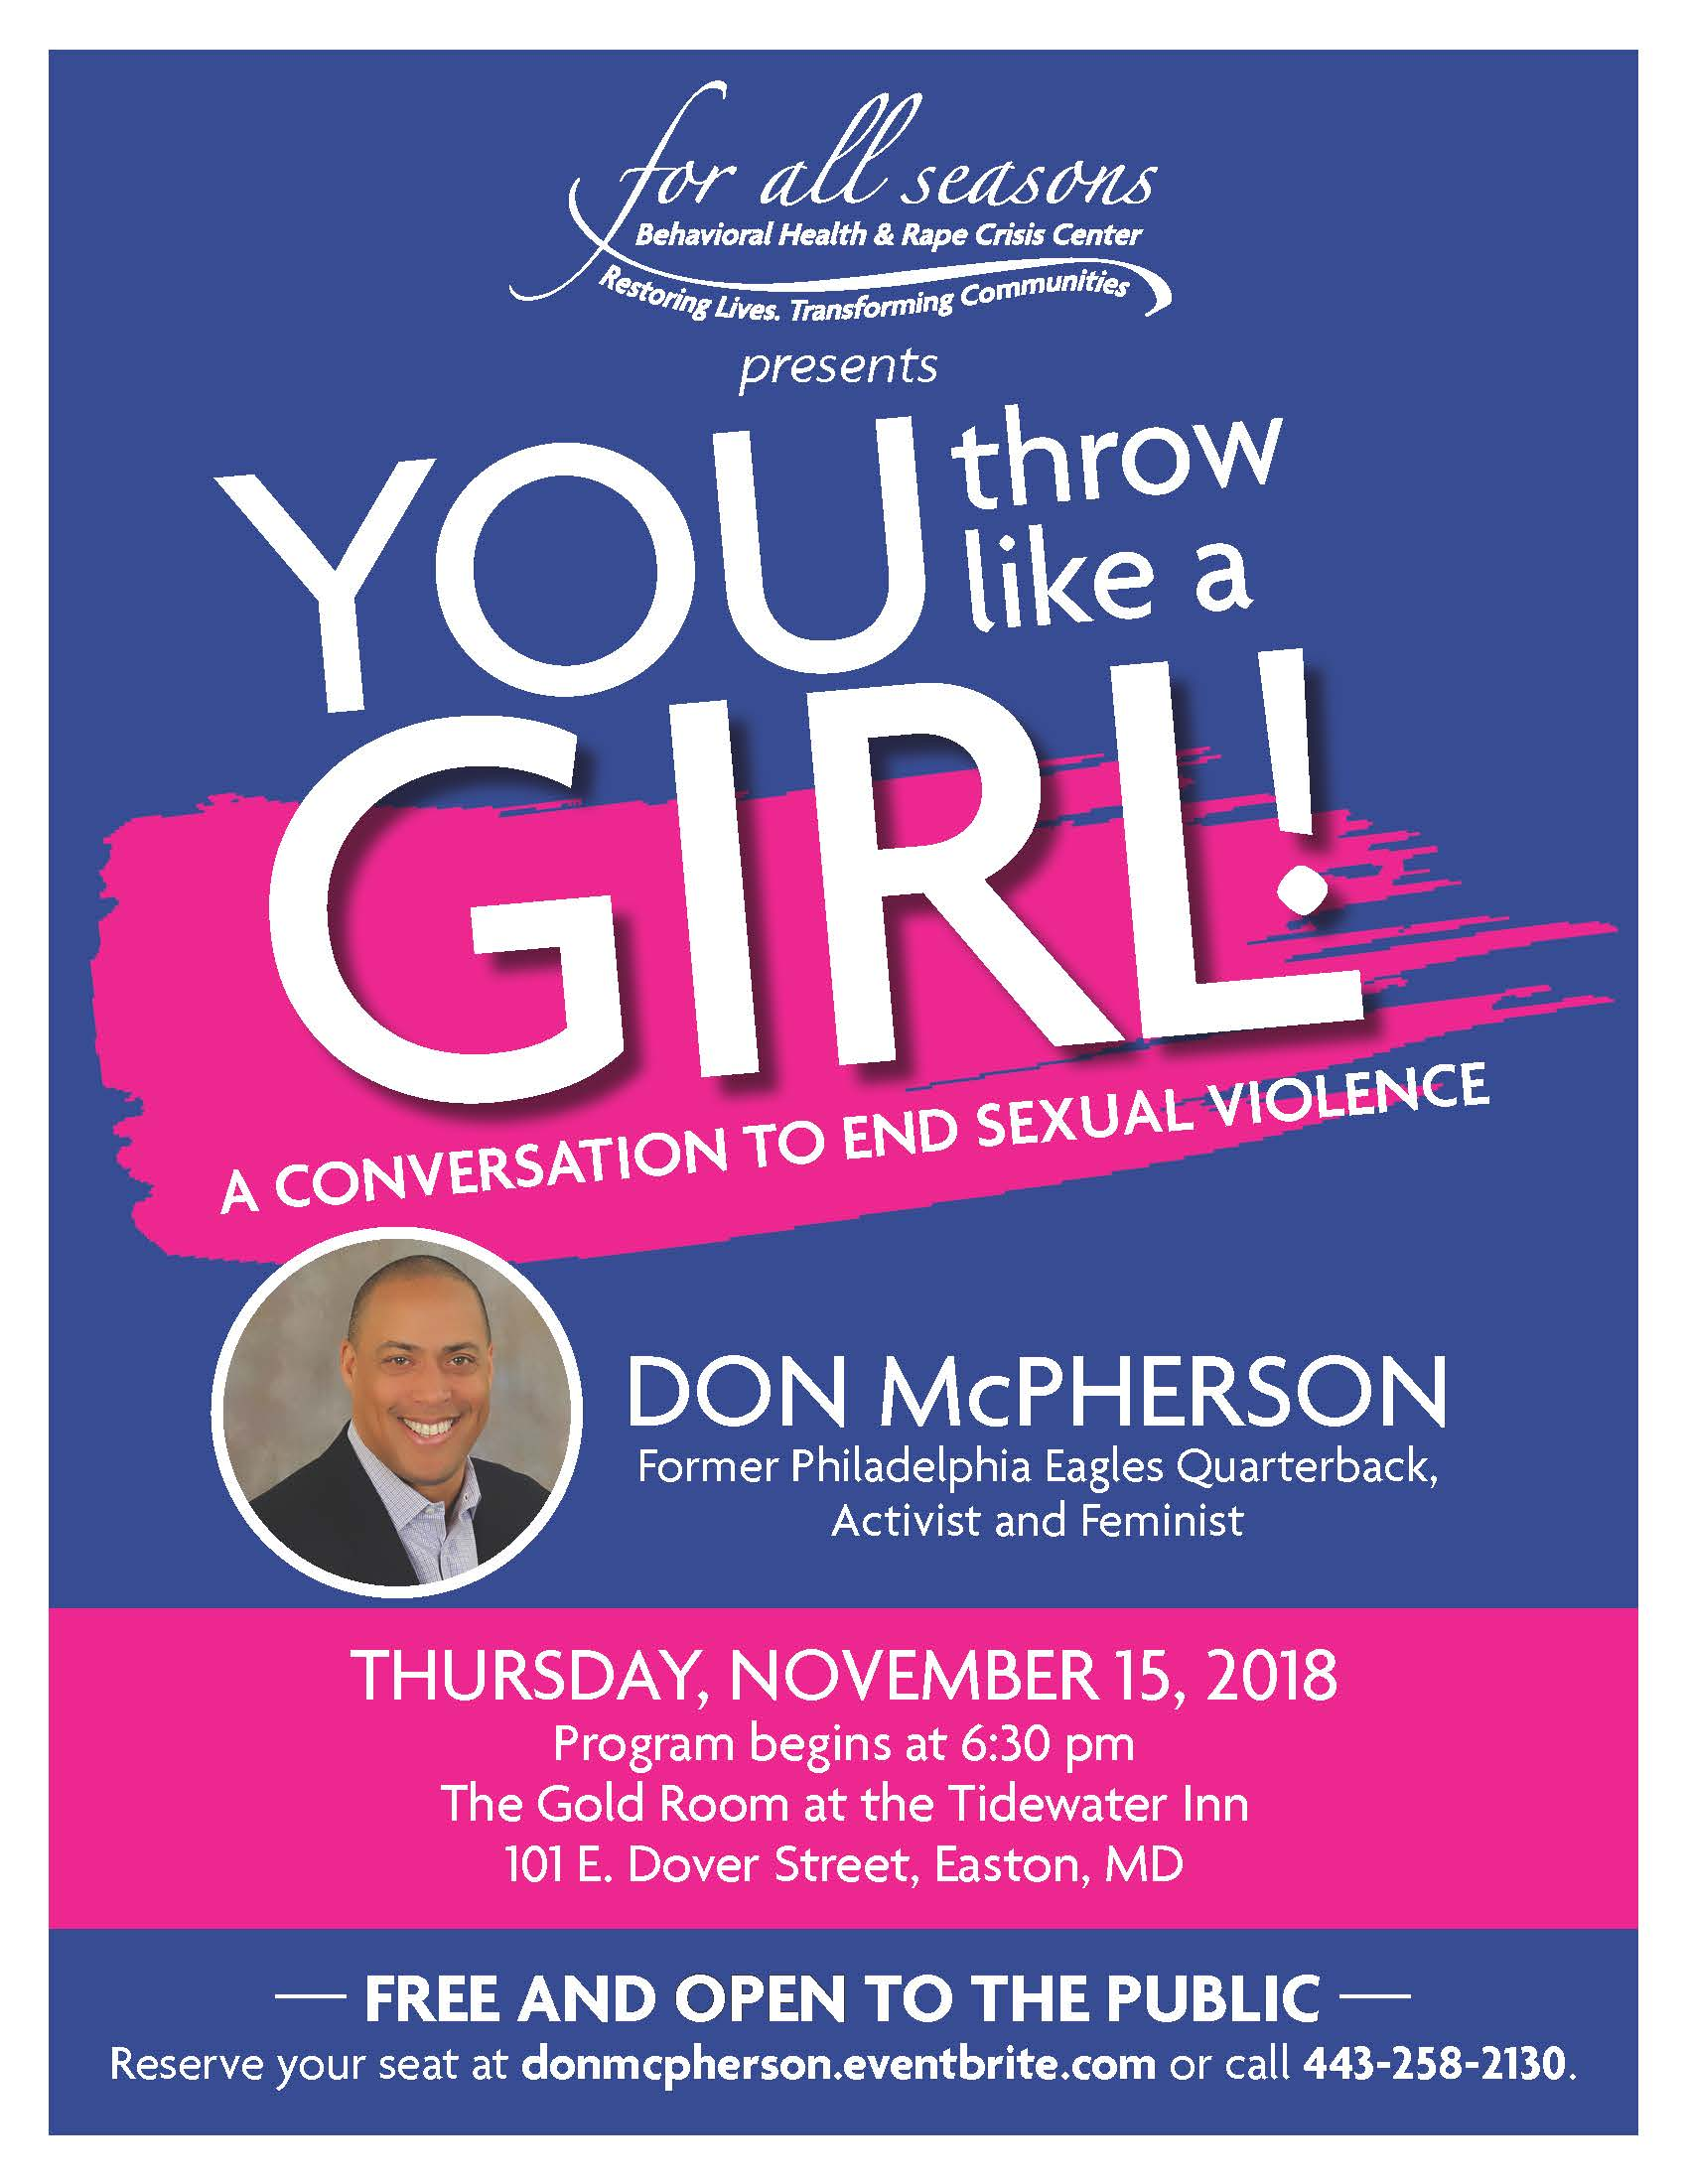 For All Seasons Presents Conversation to End Sexual Violence